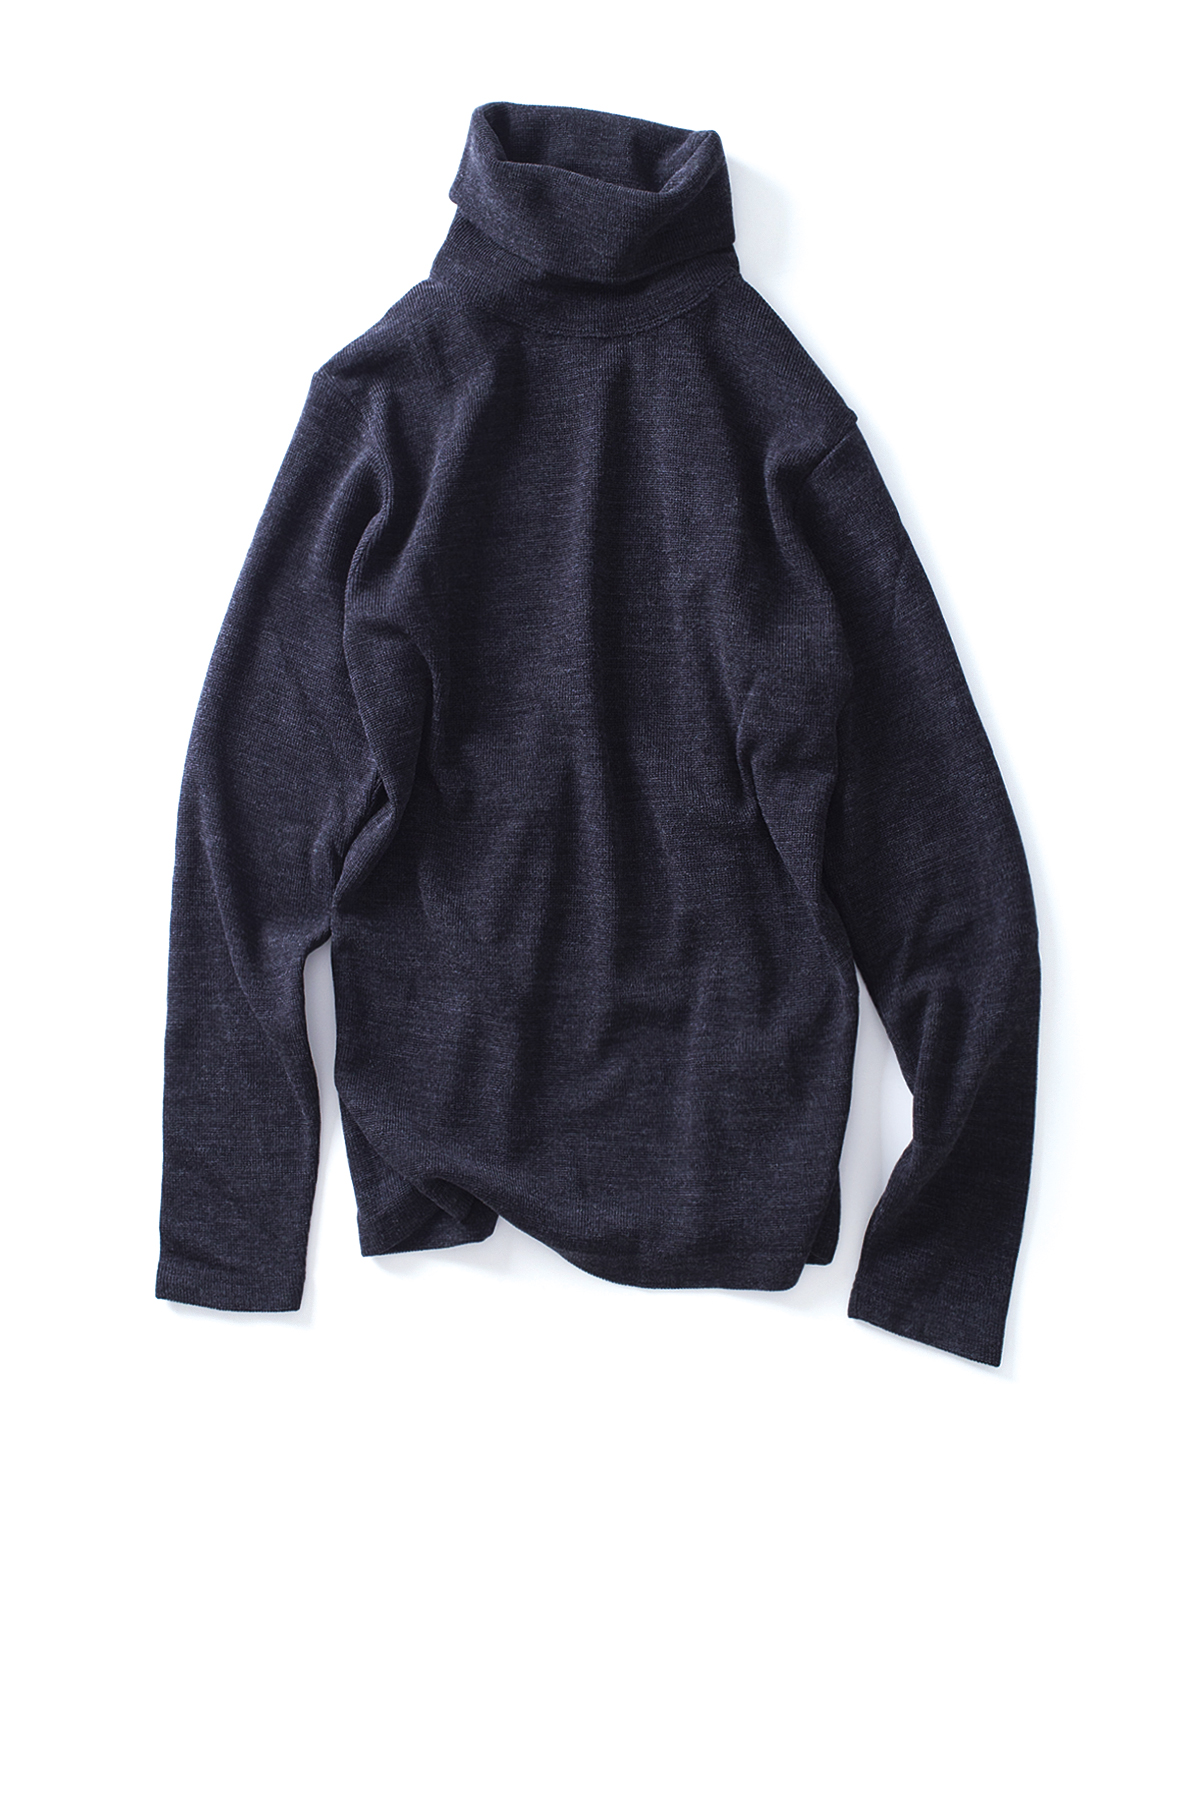 WHITE MOUNTAINEERING : Turtle Neck Pullover (Charcoal)